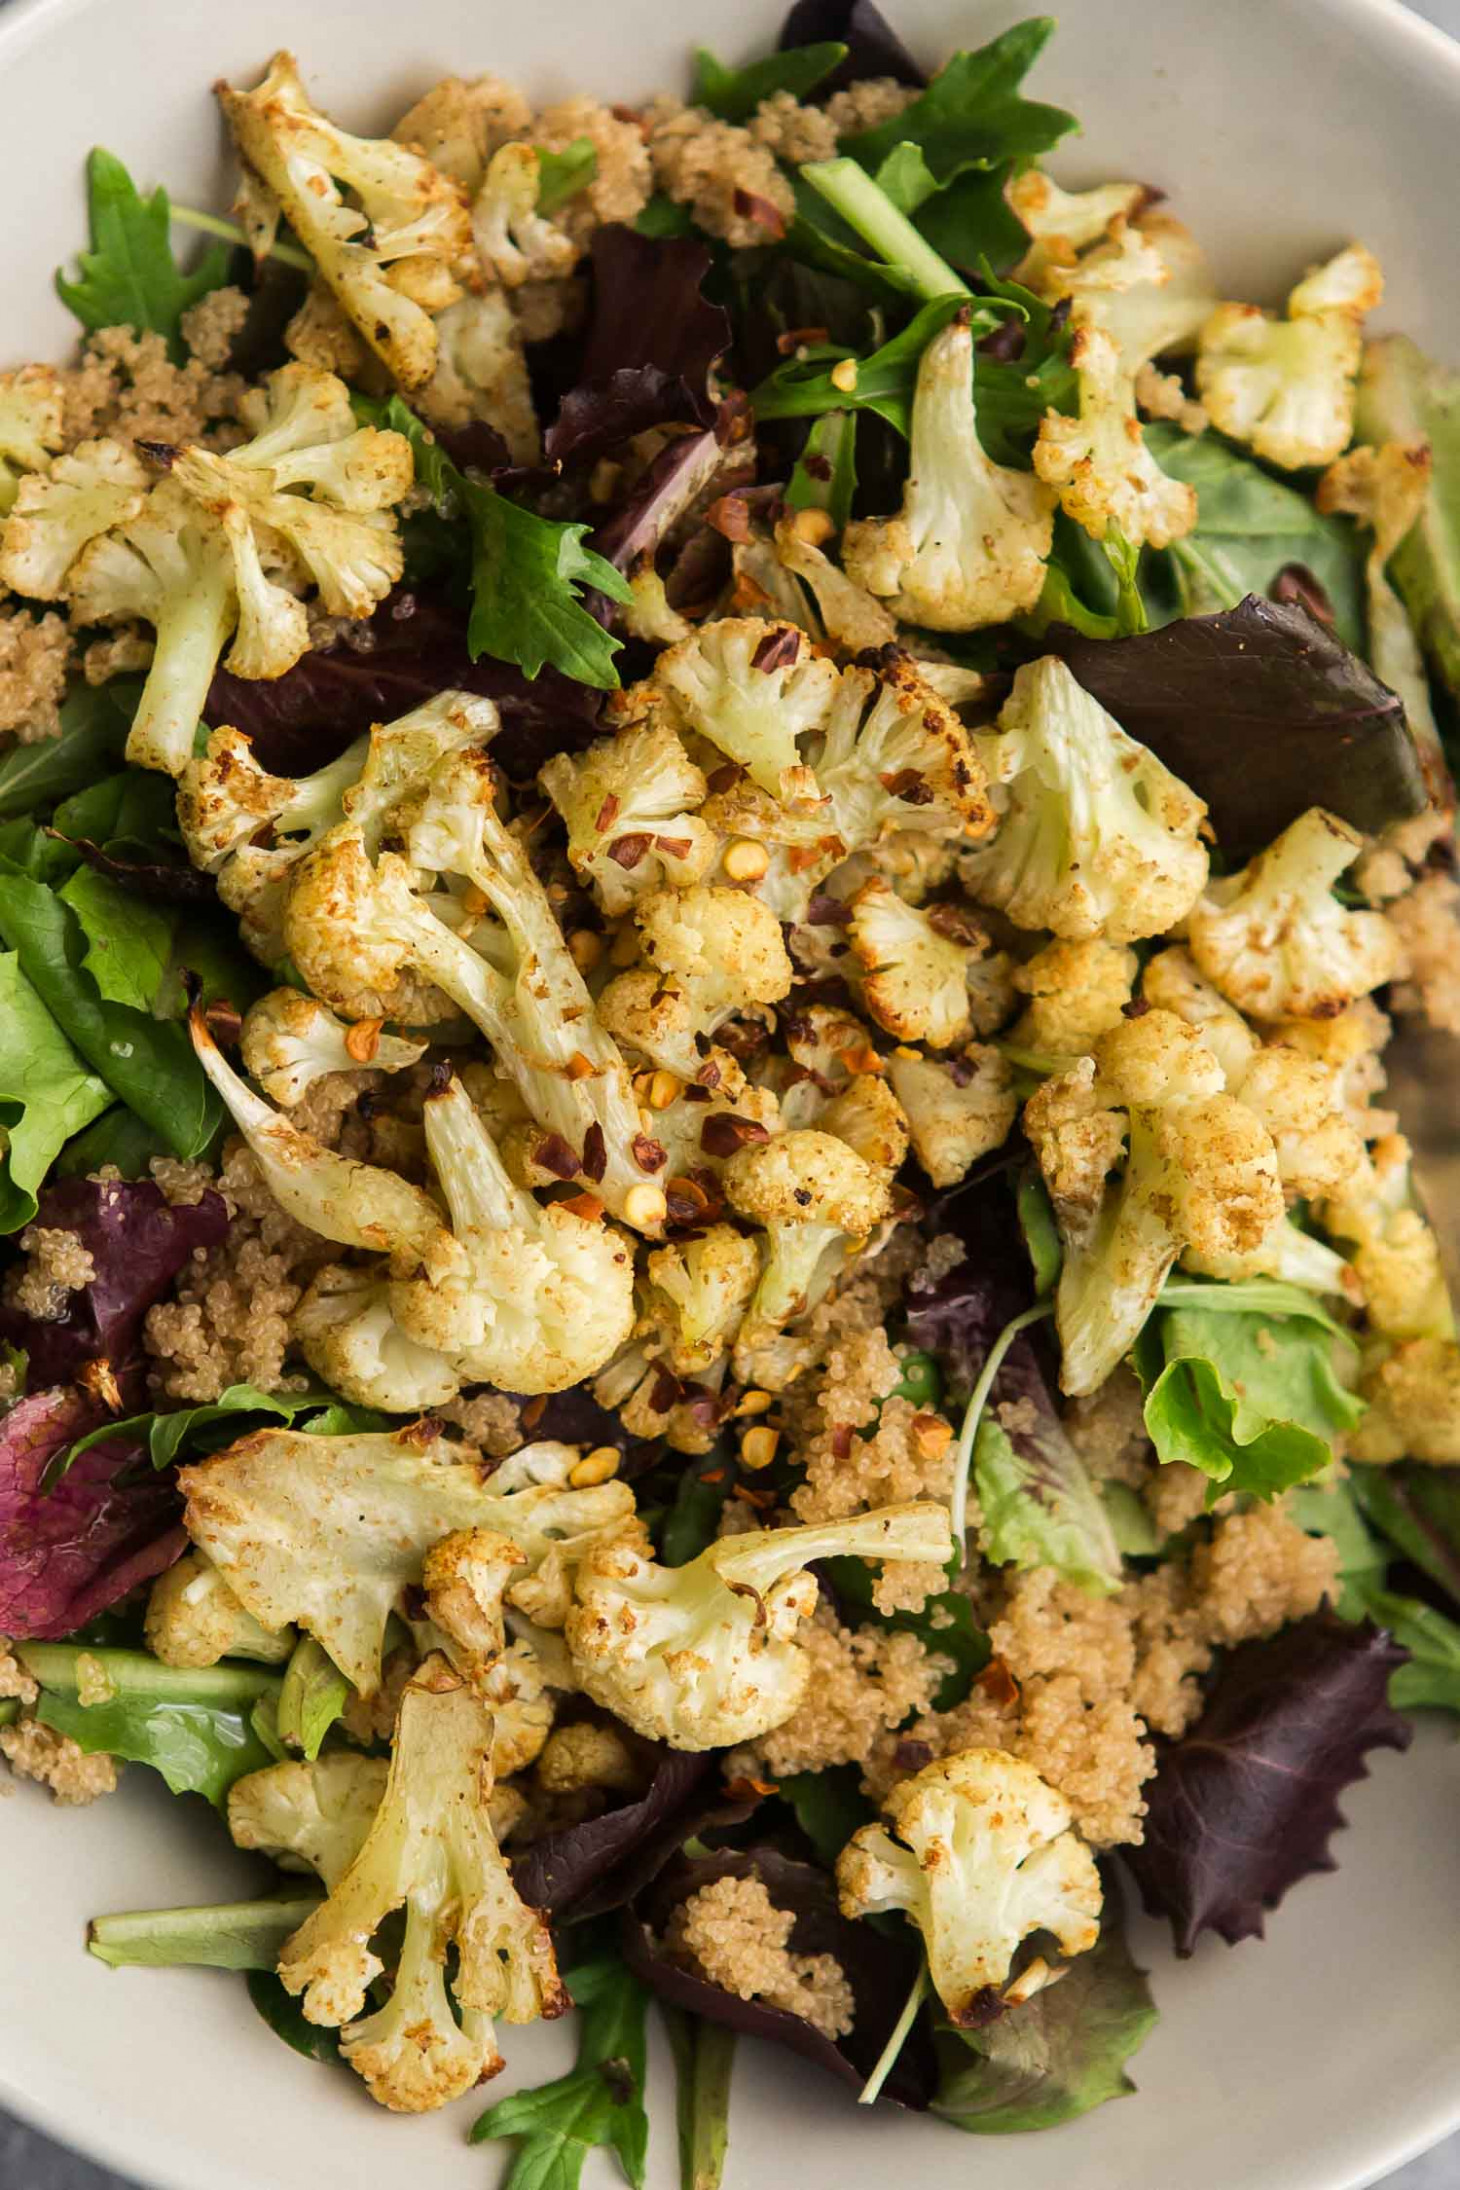 Coriander Cauliflower Amaranth Salad with Lemon Vinaigrette | Naturally Ella